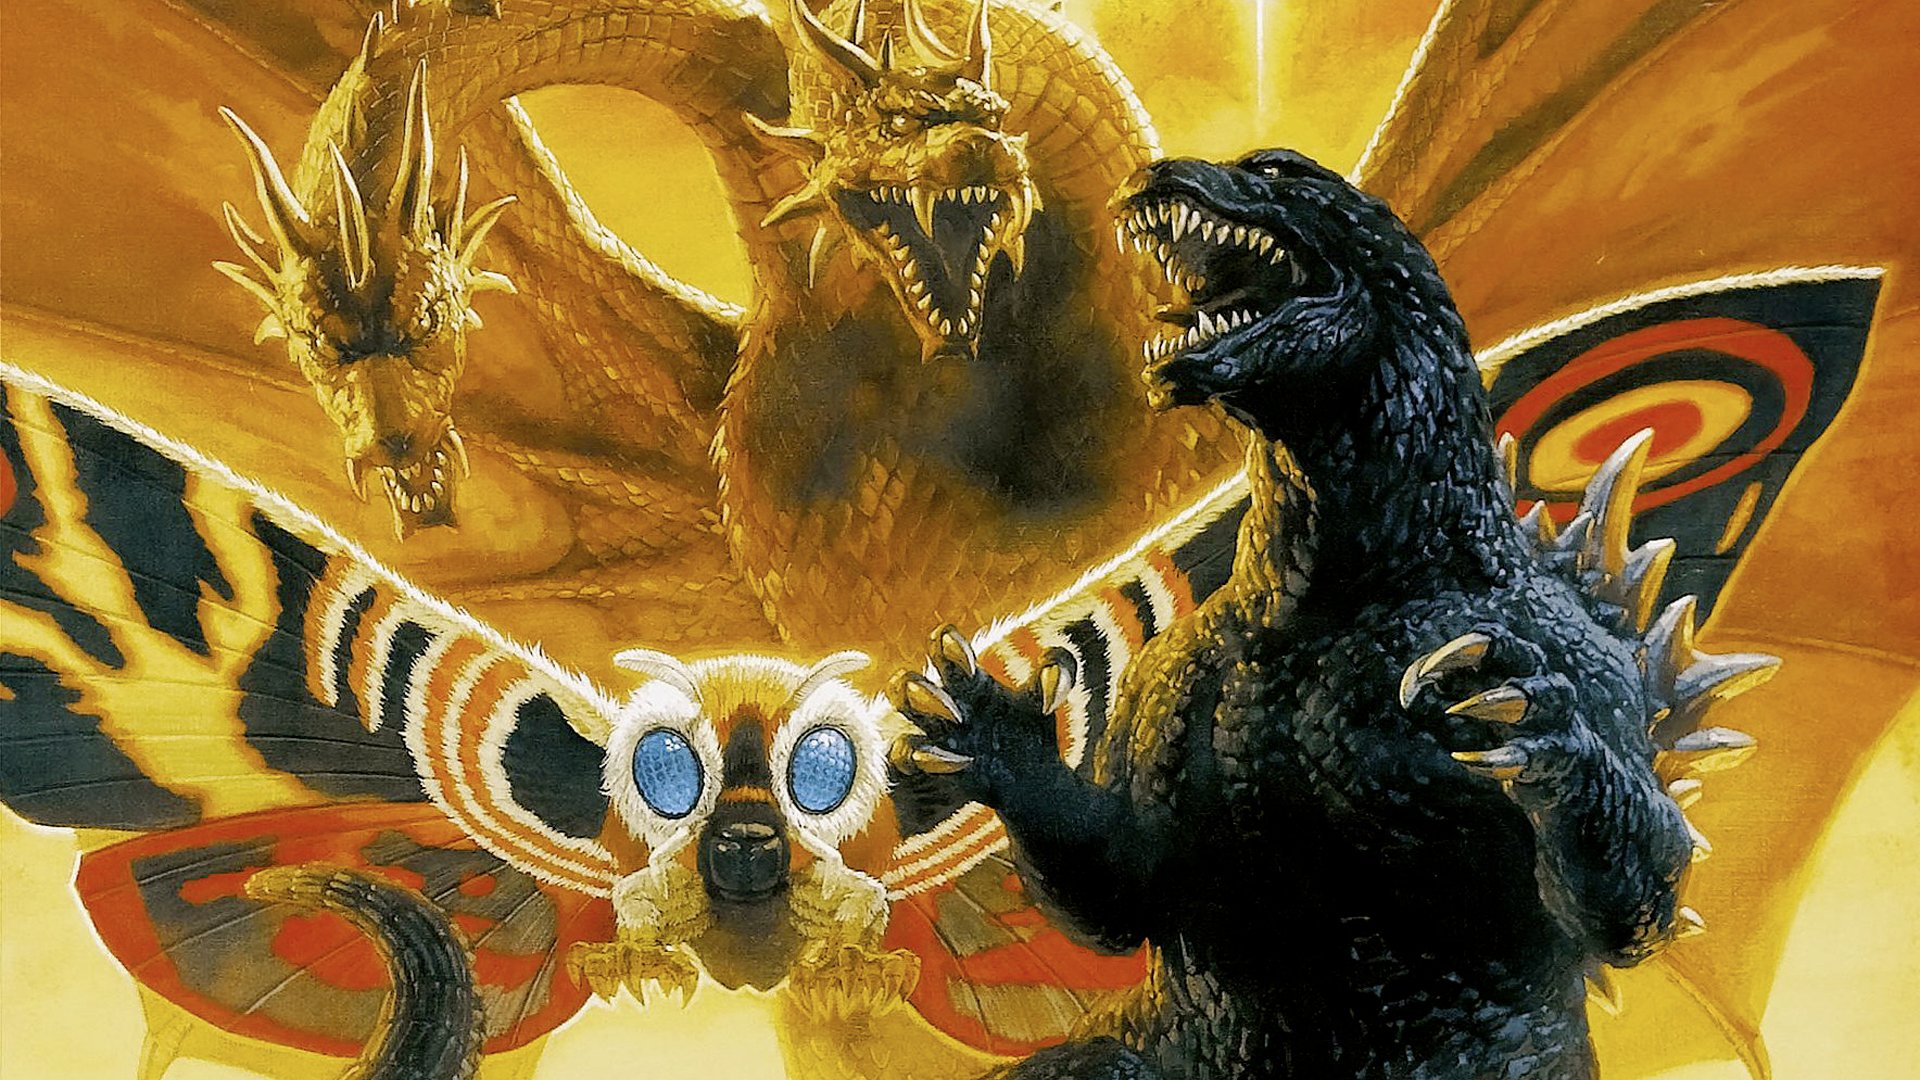 Godzilla images Godzilla Mothra and King Ghidorah Wallpaper wallpaper 1920x1080